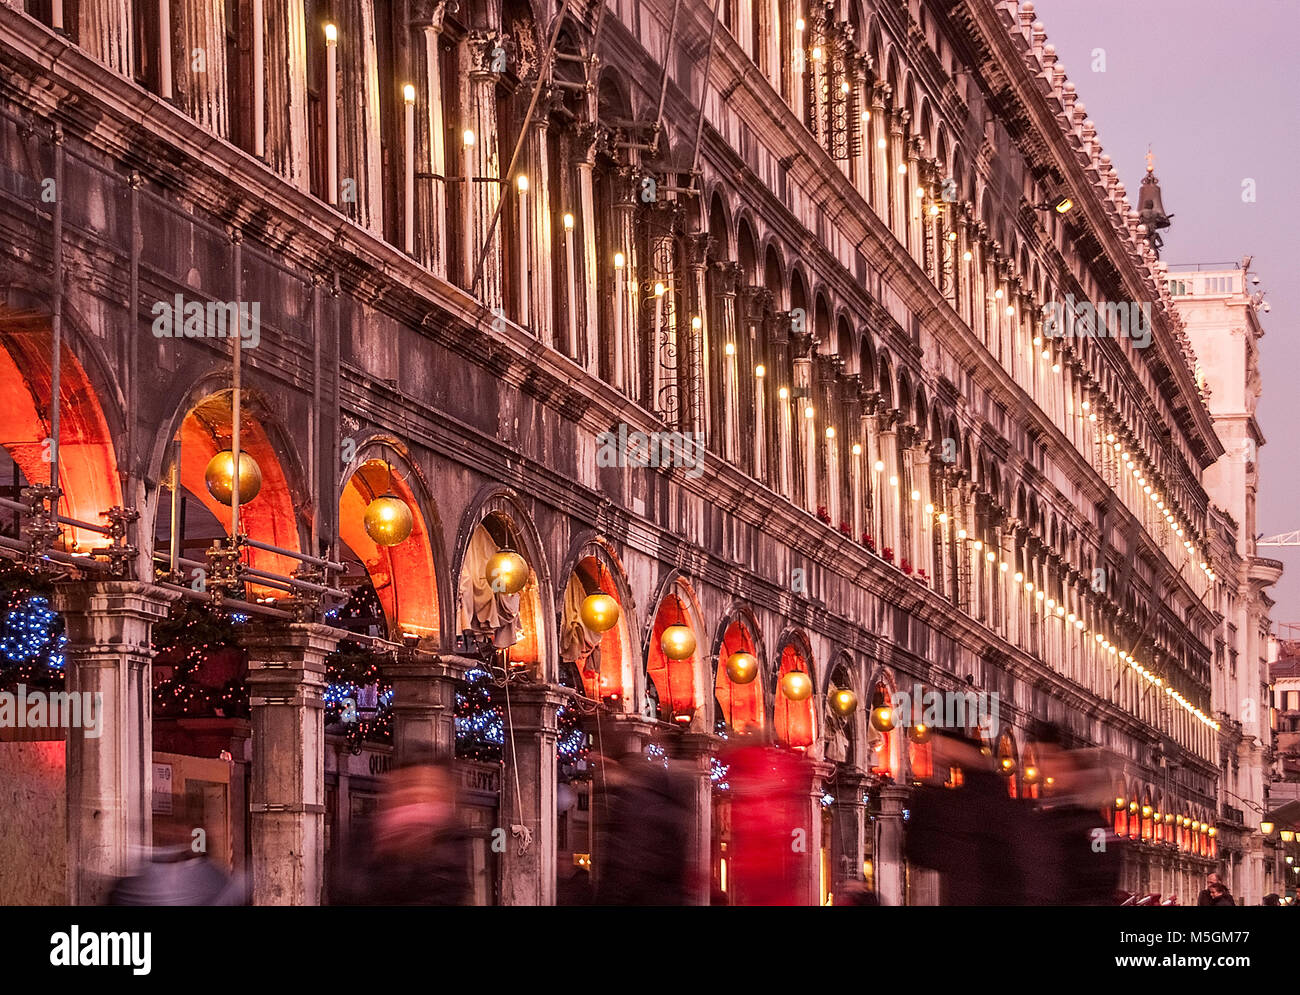 Piazza San Marco,Venice,Italy - Stock Image